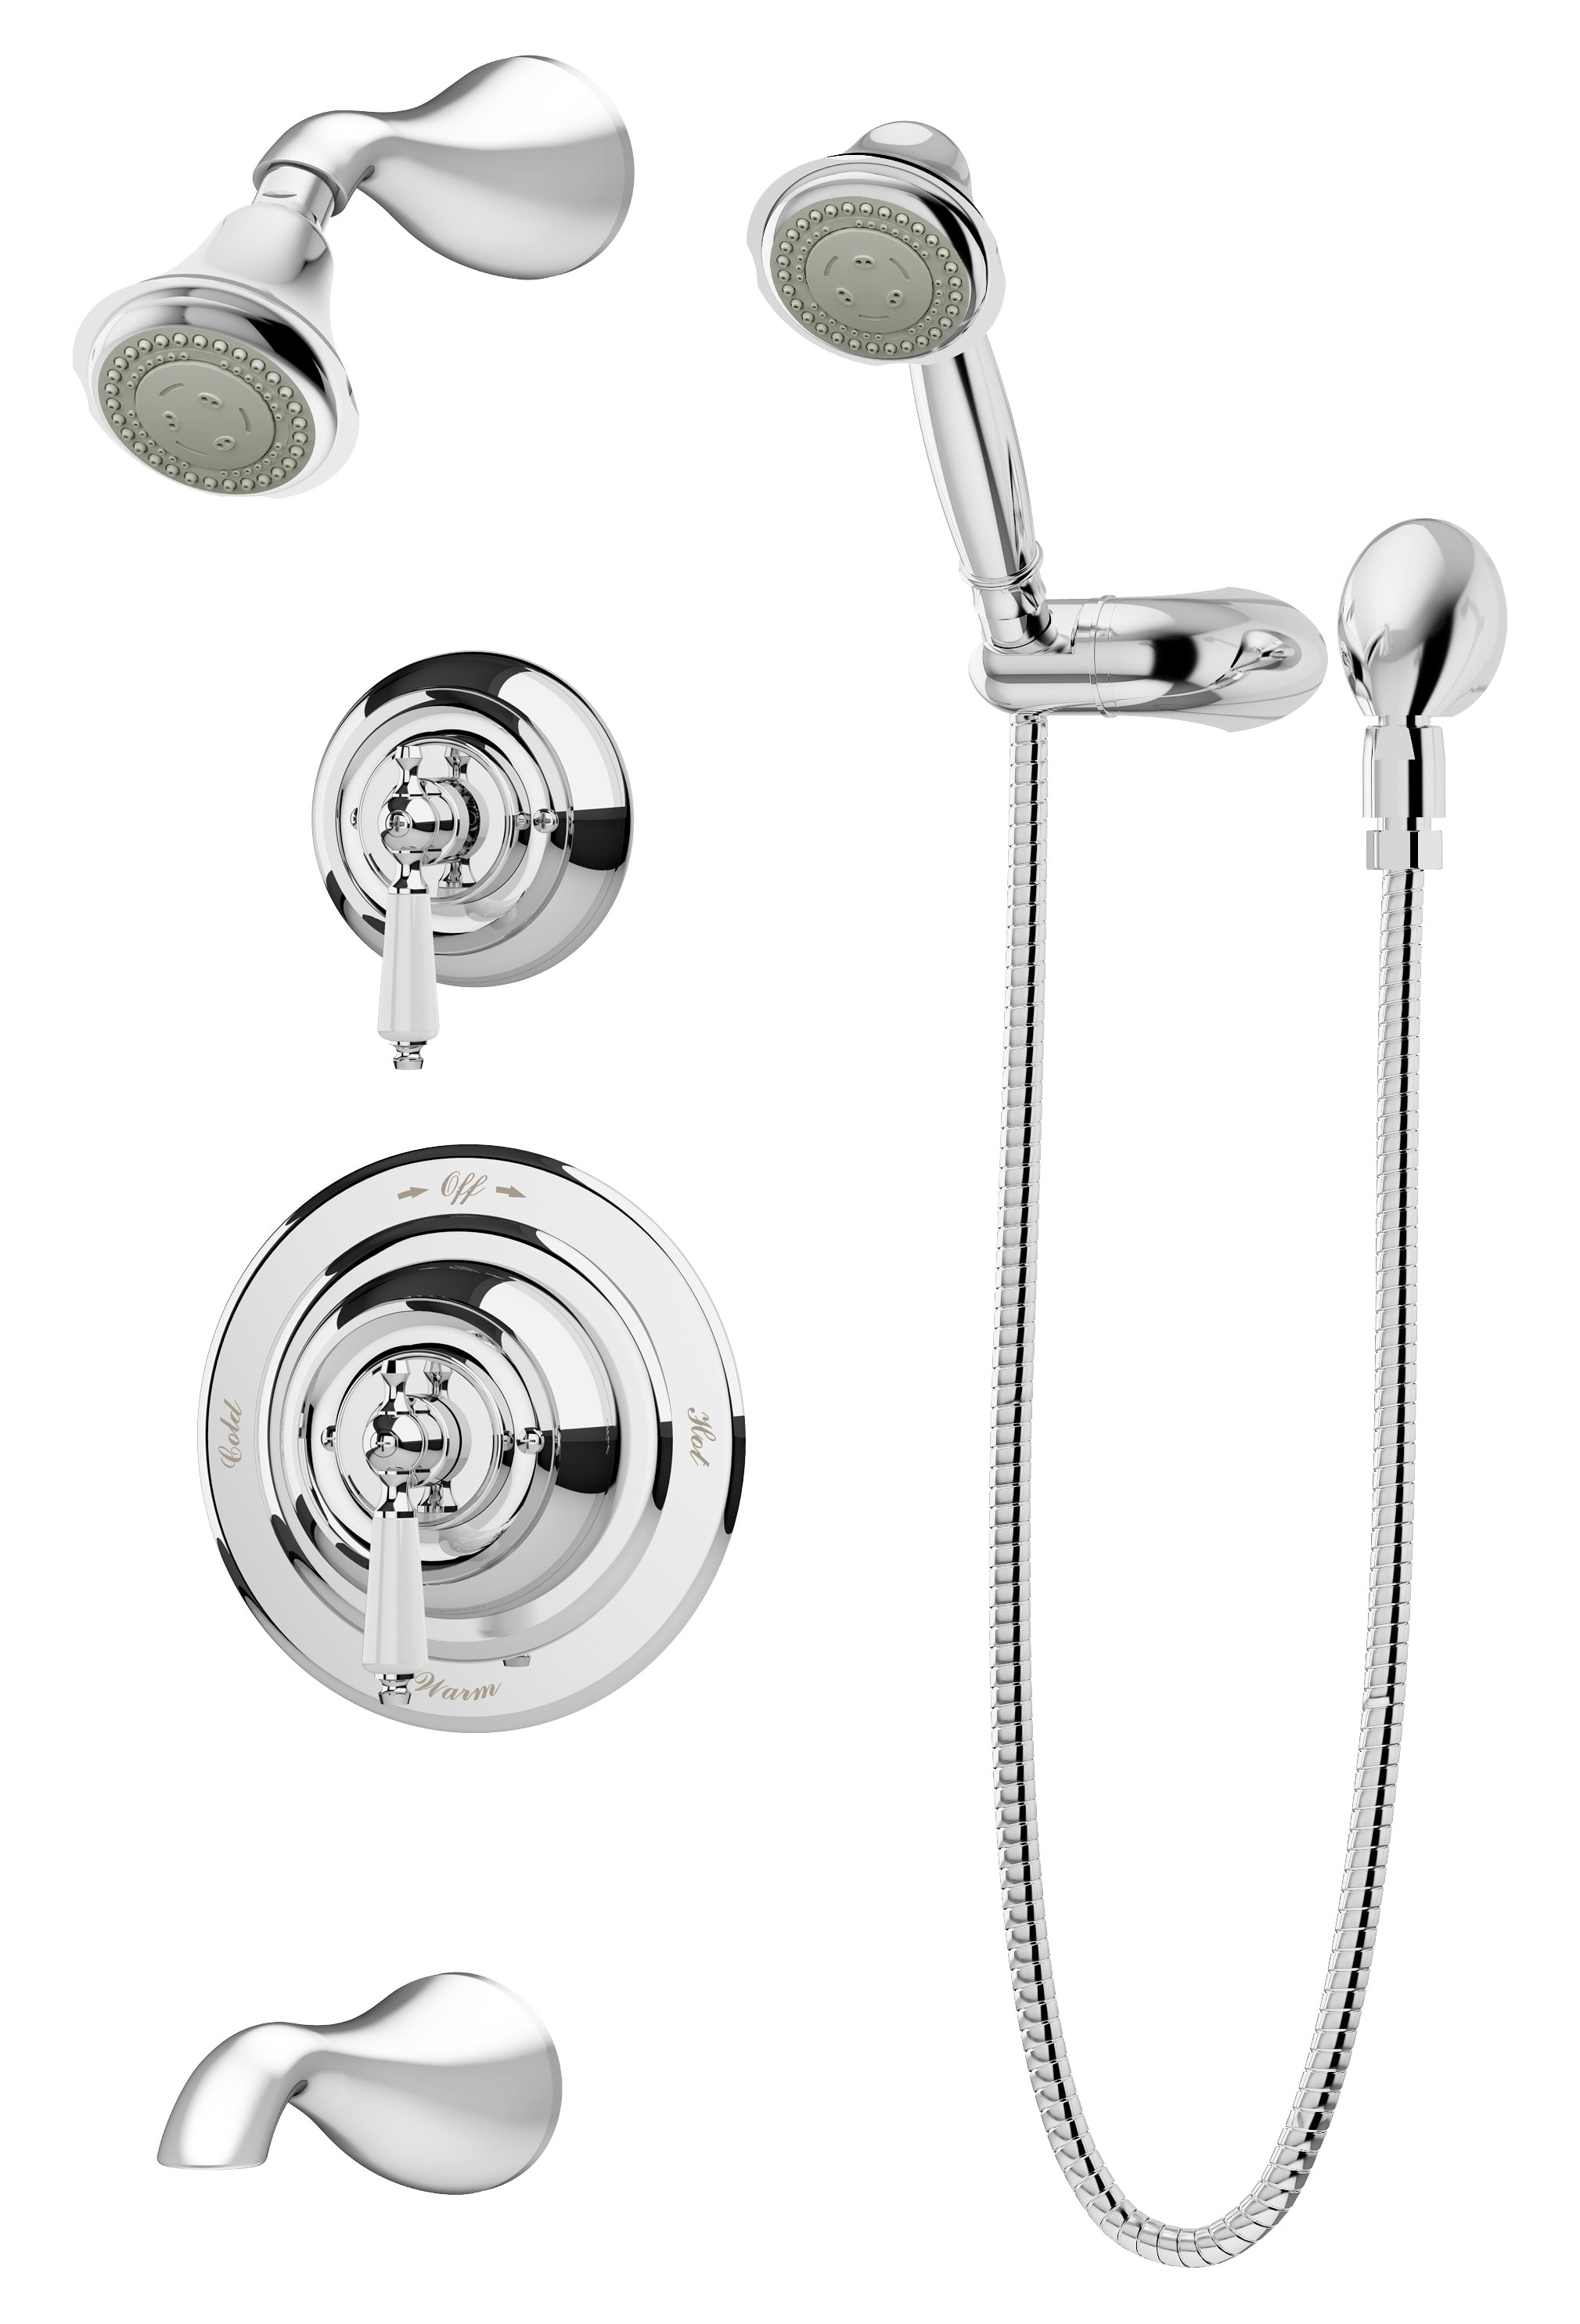 Symmons 4406 Stn 1 5 Trm Satin Nickel Carrington Pressure Balanced Shower System With Shower Head Shower Arm Hand Shower Hose And Valve Trim Faucetdirect Com